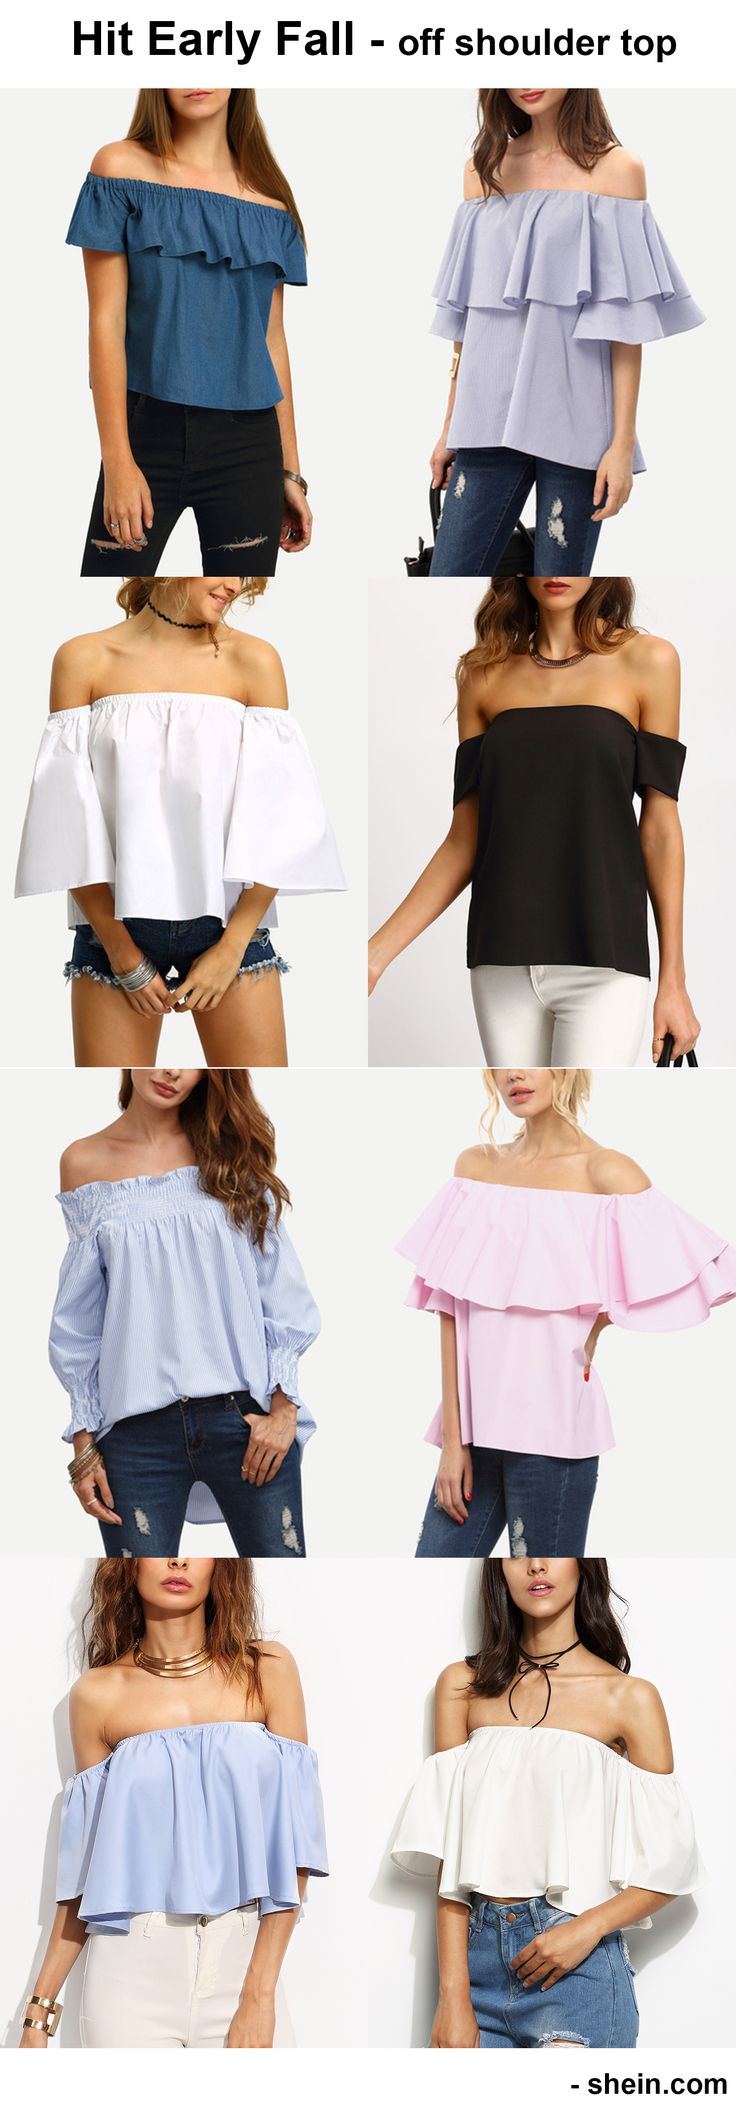 Hit early fall and grab last summer. Off the shoulder top, ruffle blouse. adorable & chic!